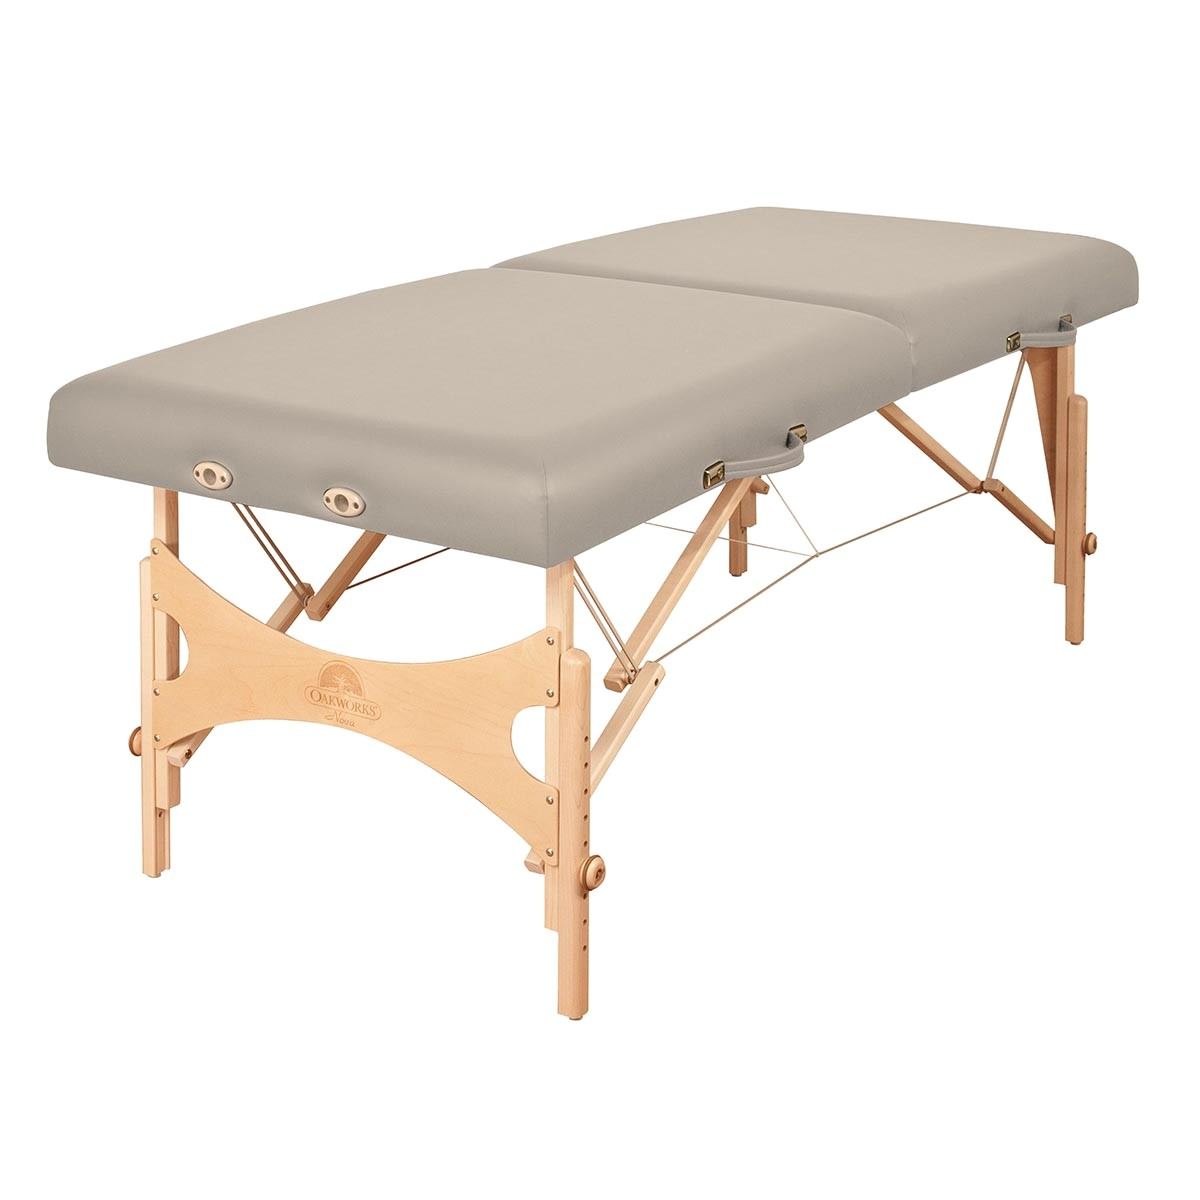 oakworks nova massage table only opal 31 w60701op3 p 944 21320